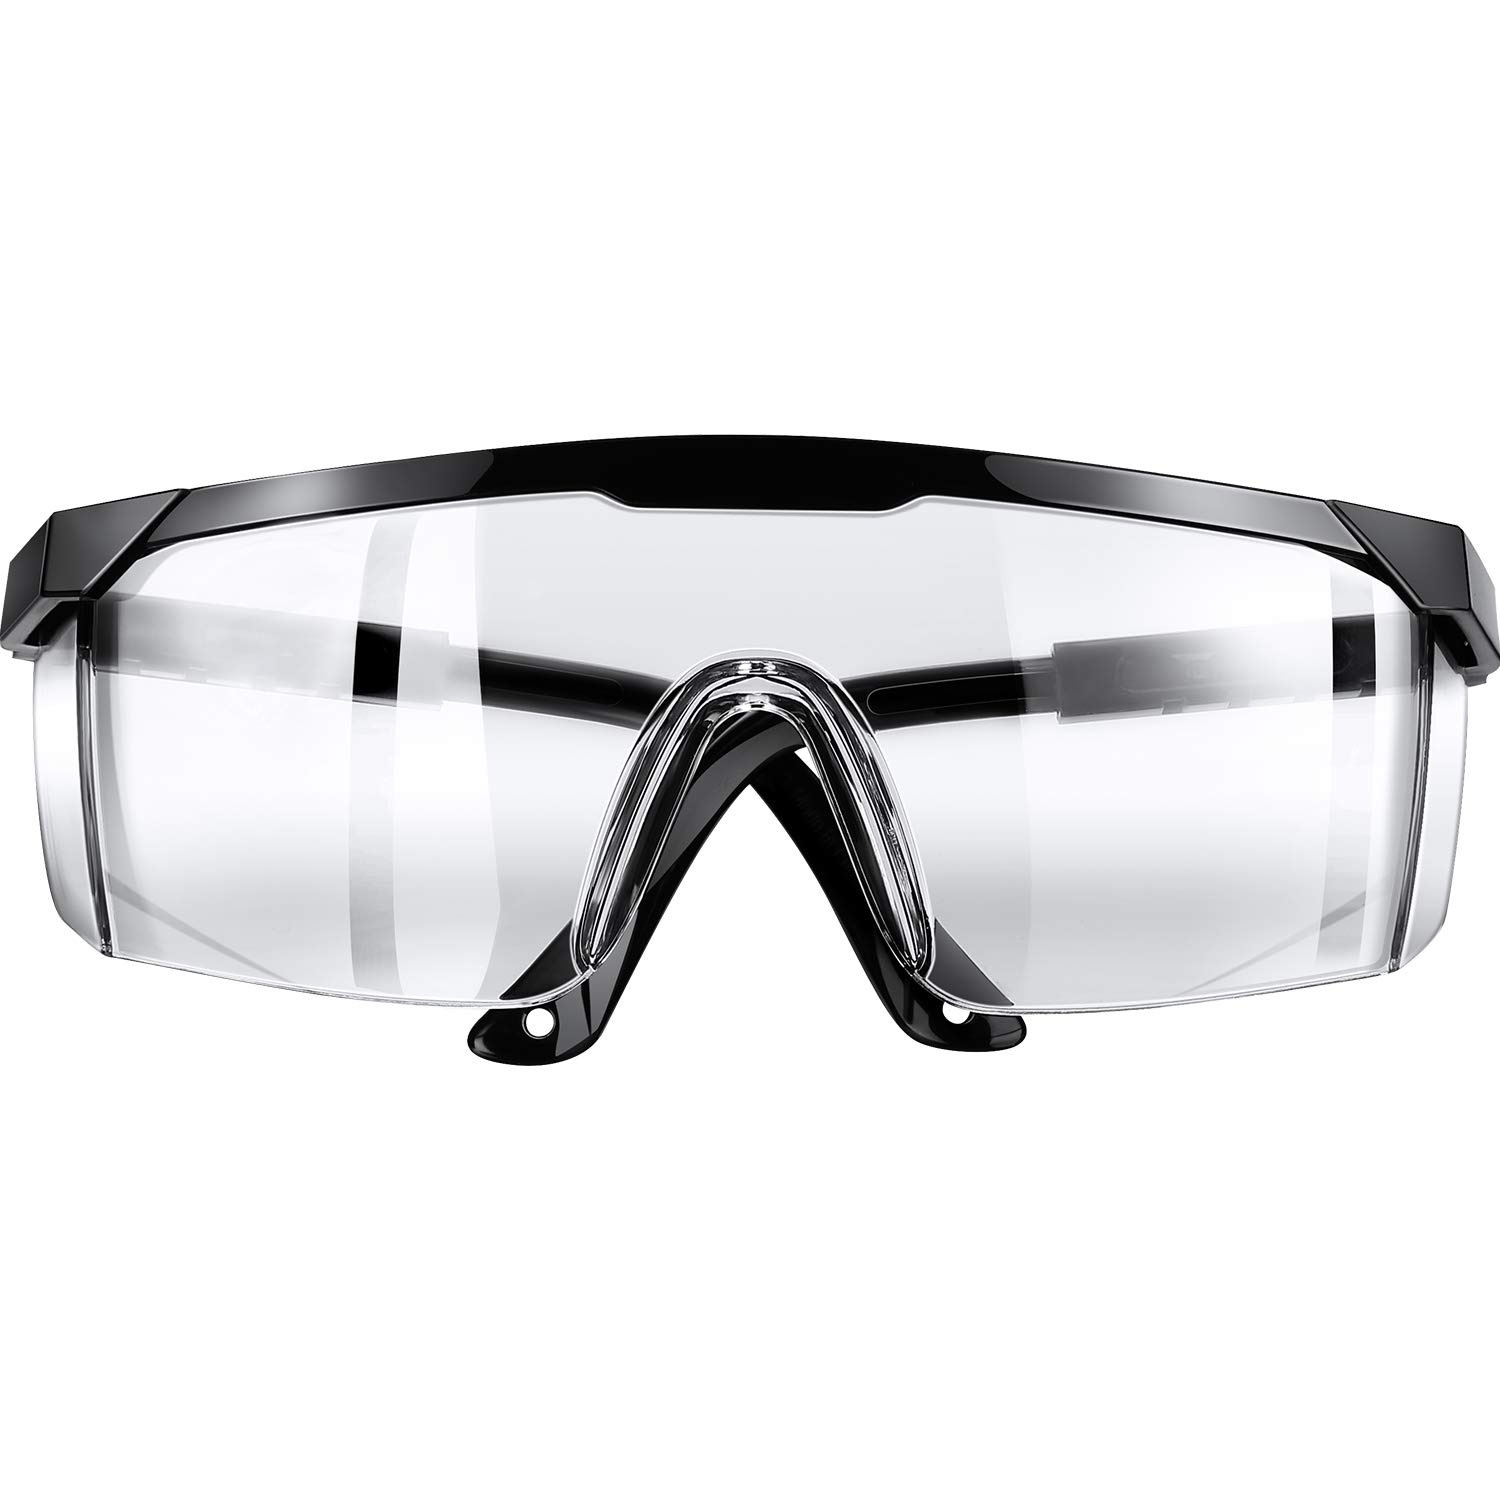 Safety Goggles, Clear Glasses